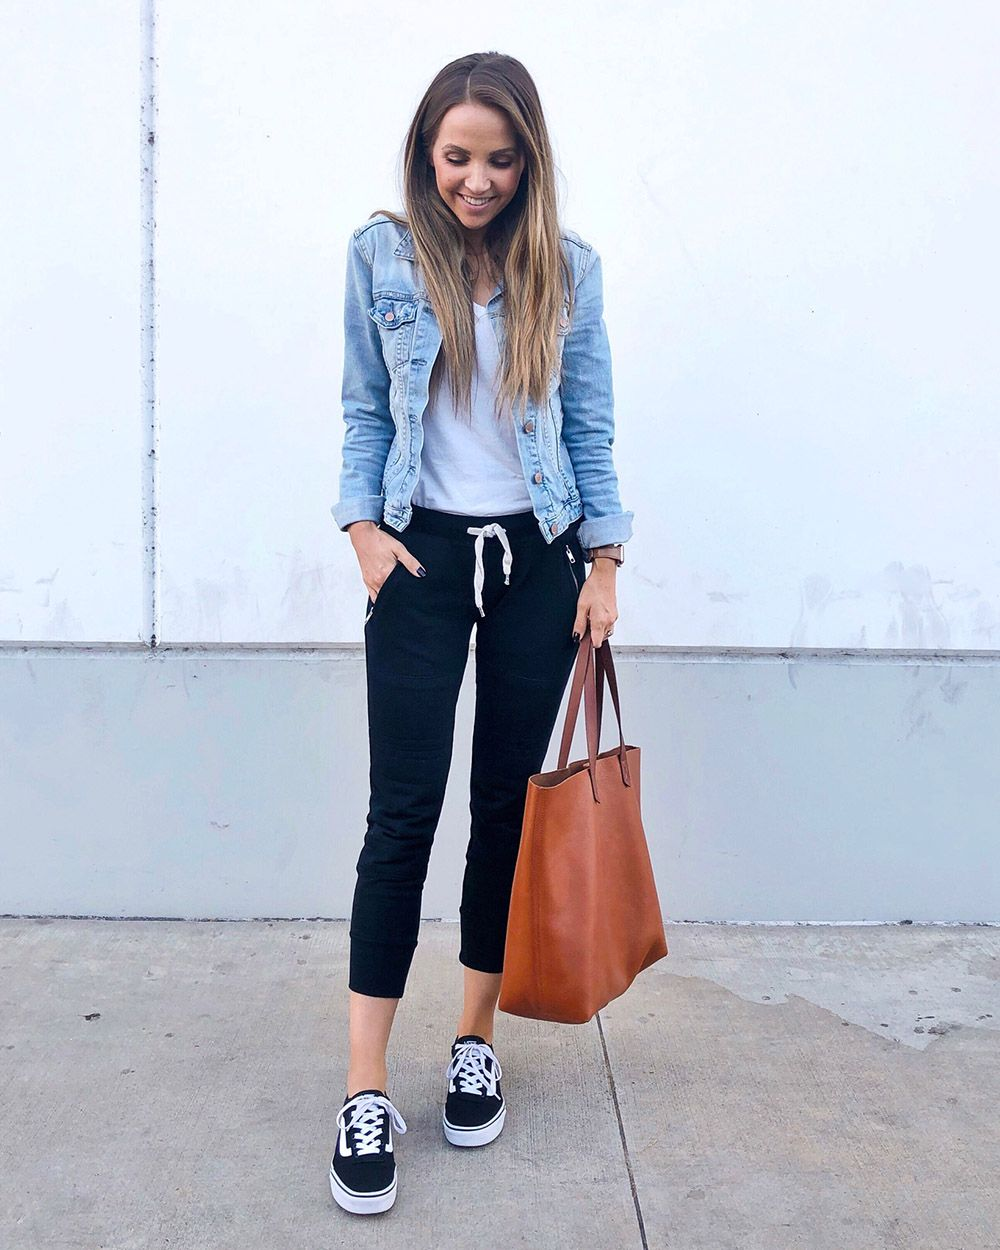 Instagram Roundup Weekend Sales Merrick S Art Fashion Athleisure Outfits Jogger Outfit Casual [ 1250 x 1000 Pixel ]